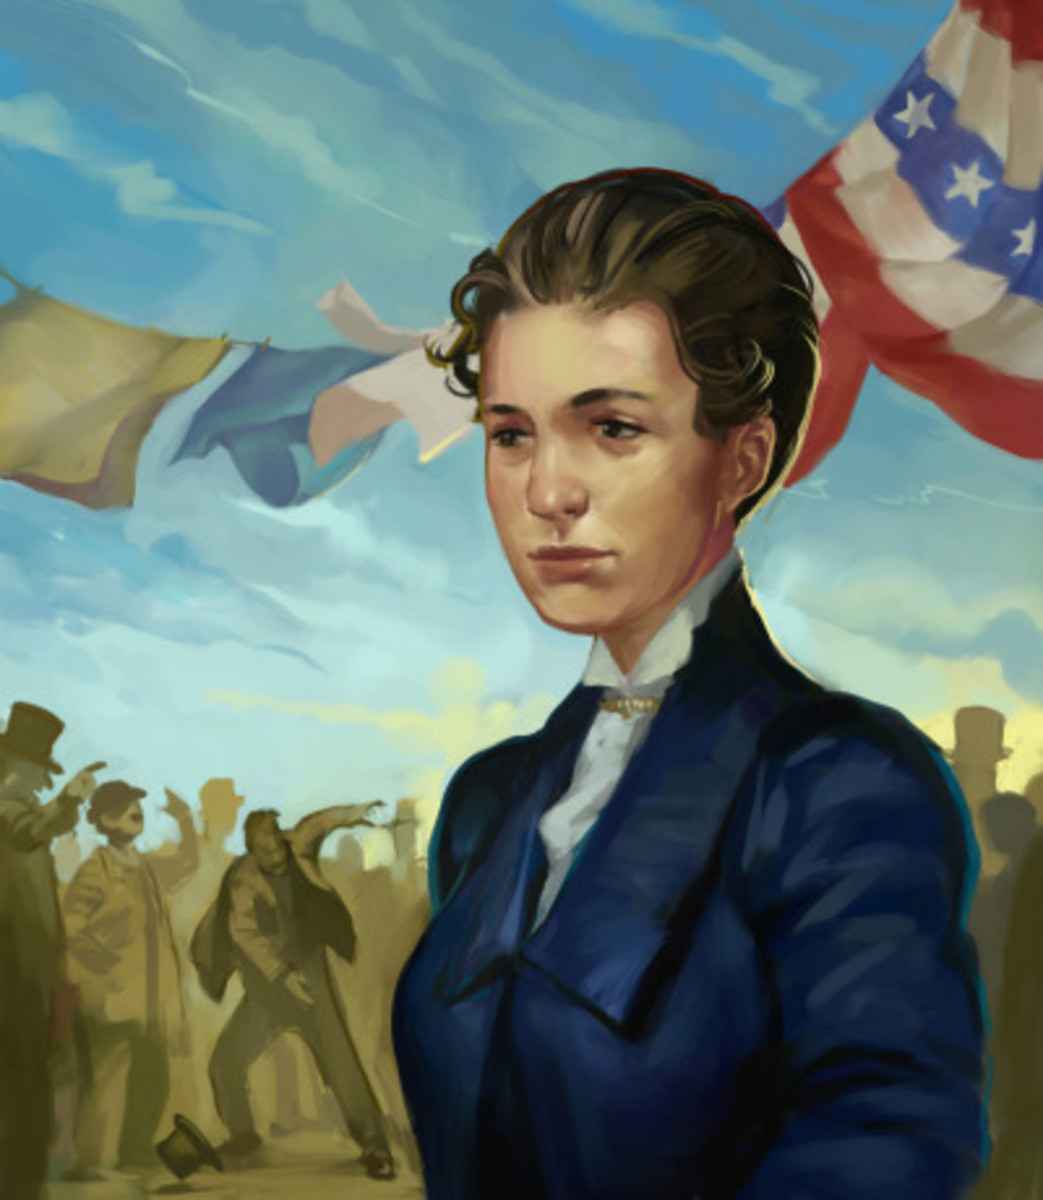 Animated depiction of Susanna Salter on election day